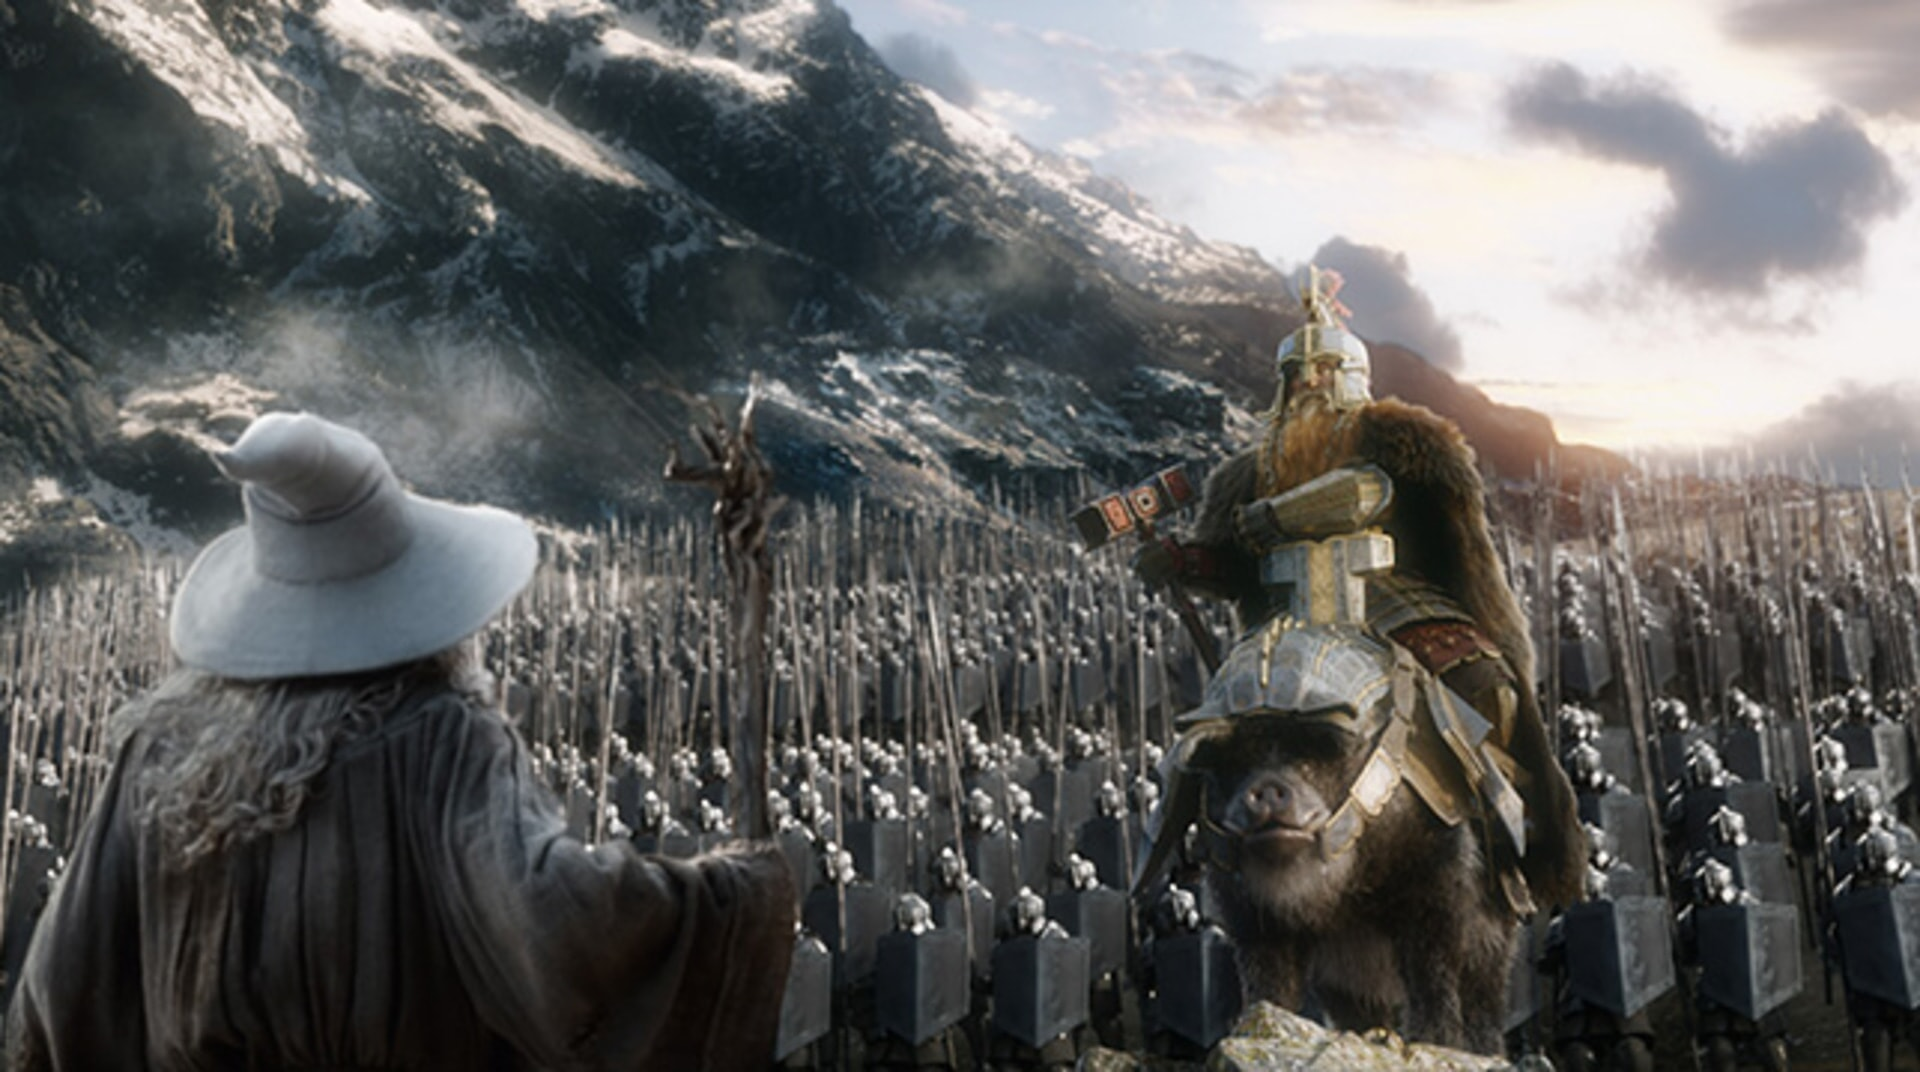 The Hobbit: The Battle of the Five Armies - Image 40